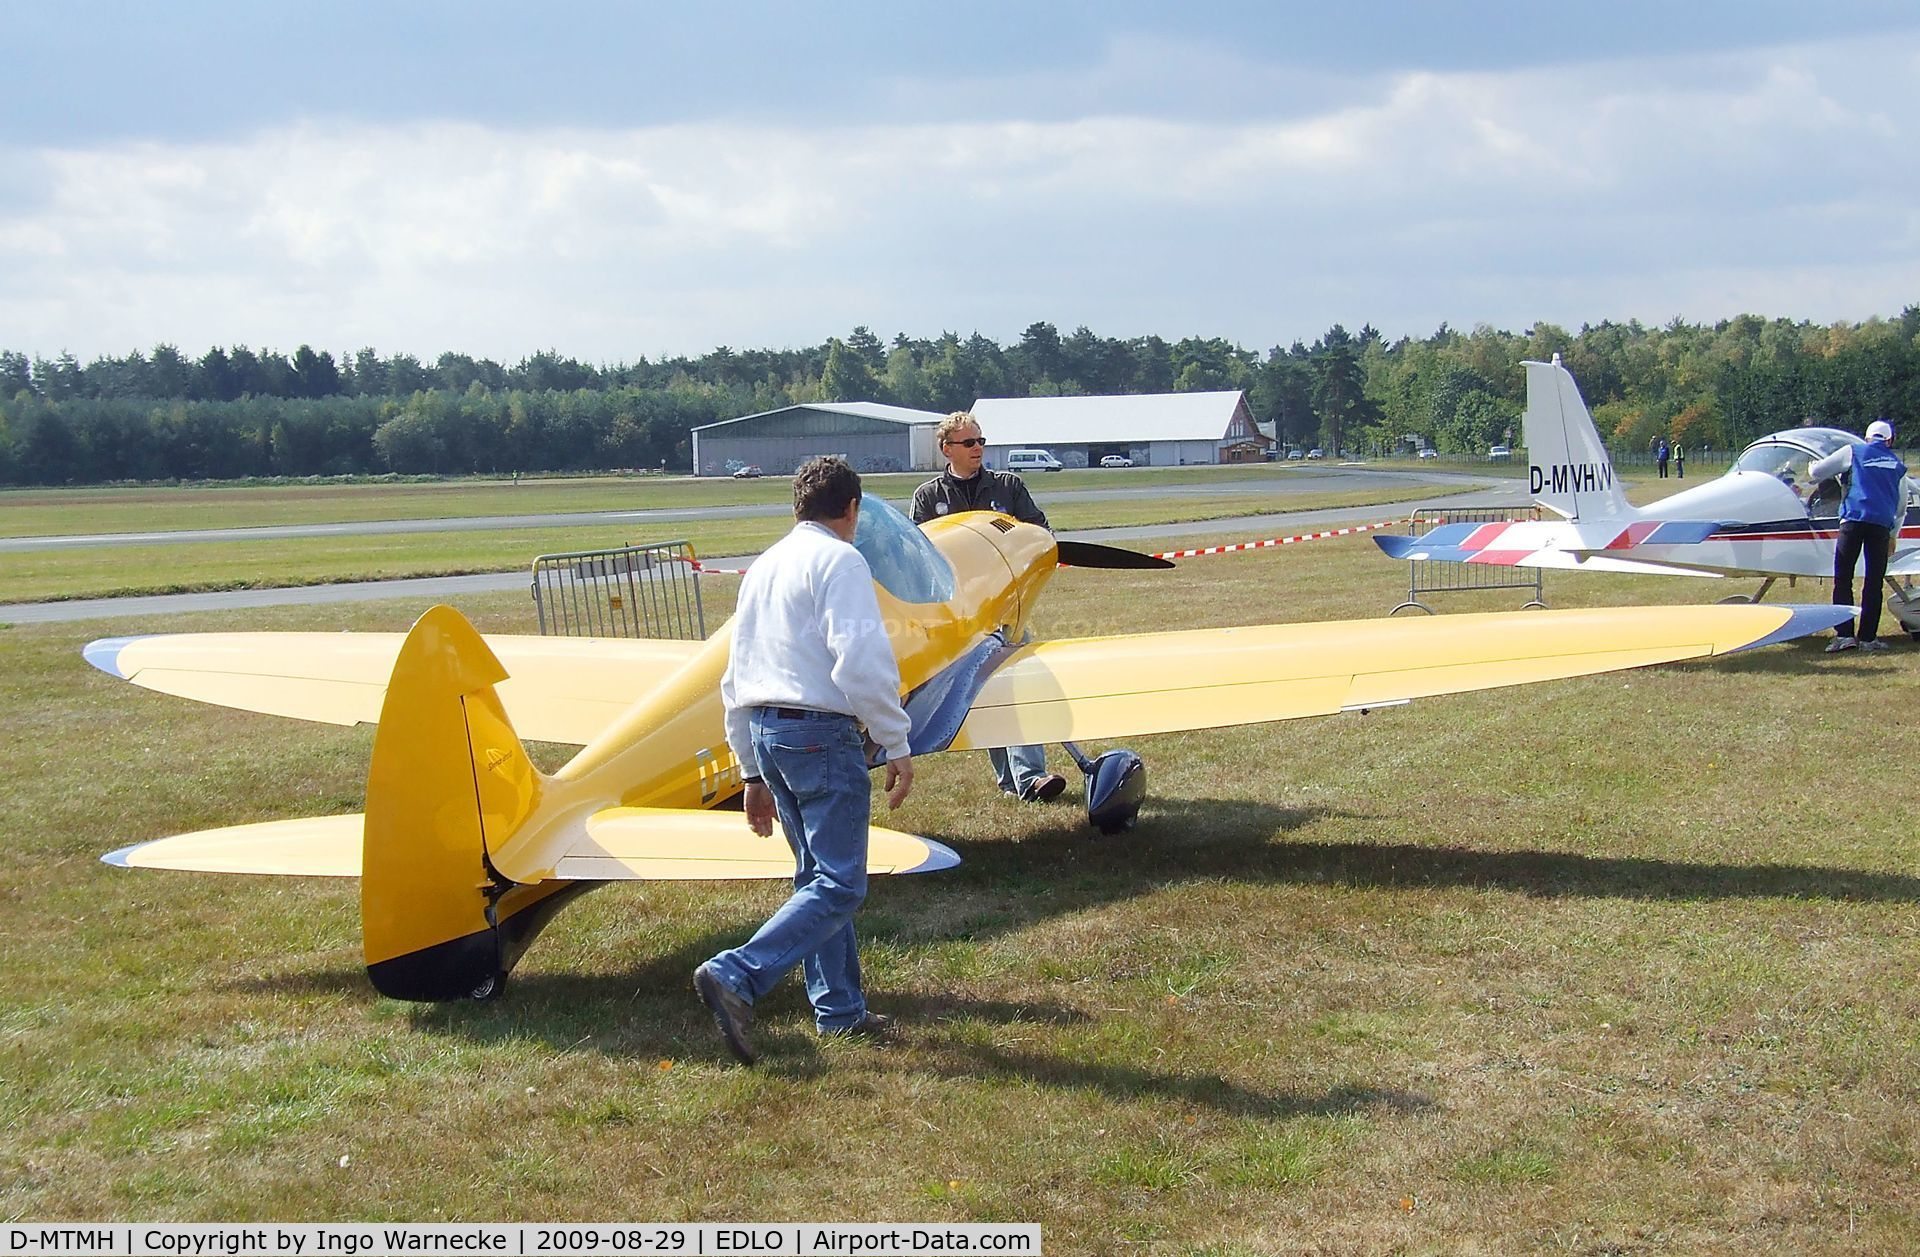 D-MTMH, 2000 Silence Twister C/N 001, Silence Twister prototype at the 2009 OUV-Meeting at Oerlinghausen airfield